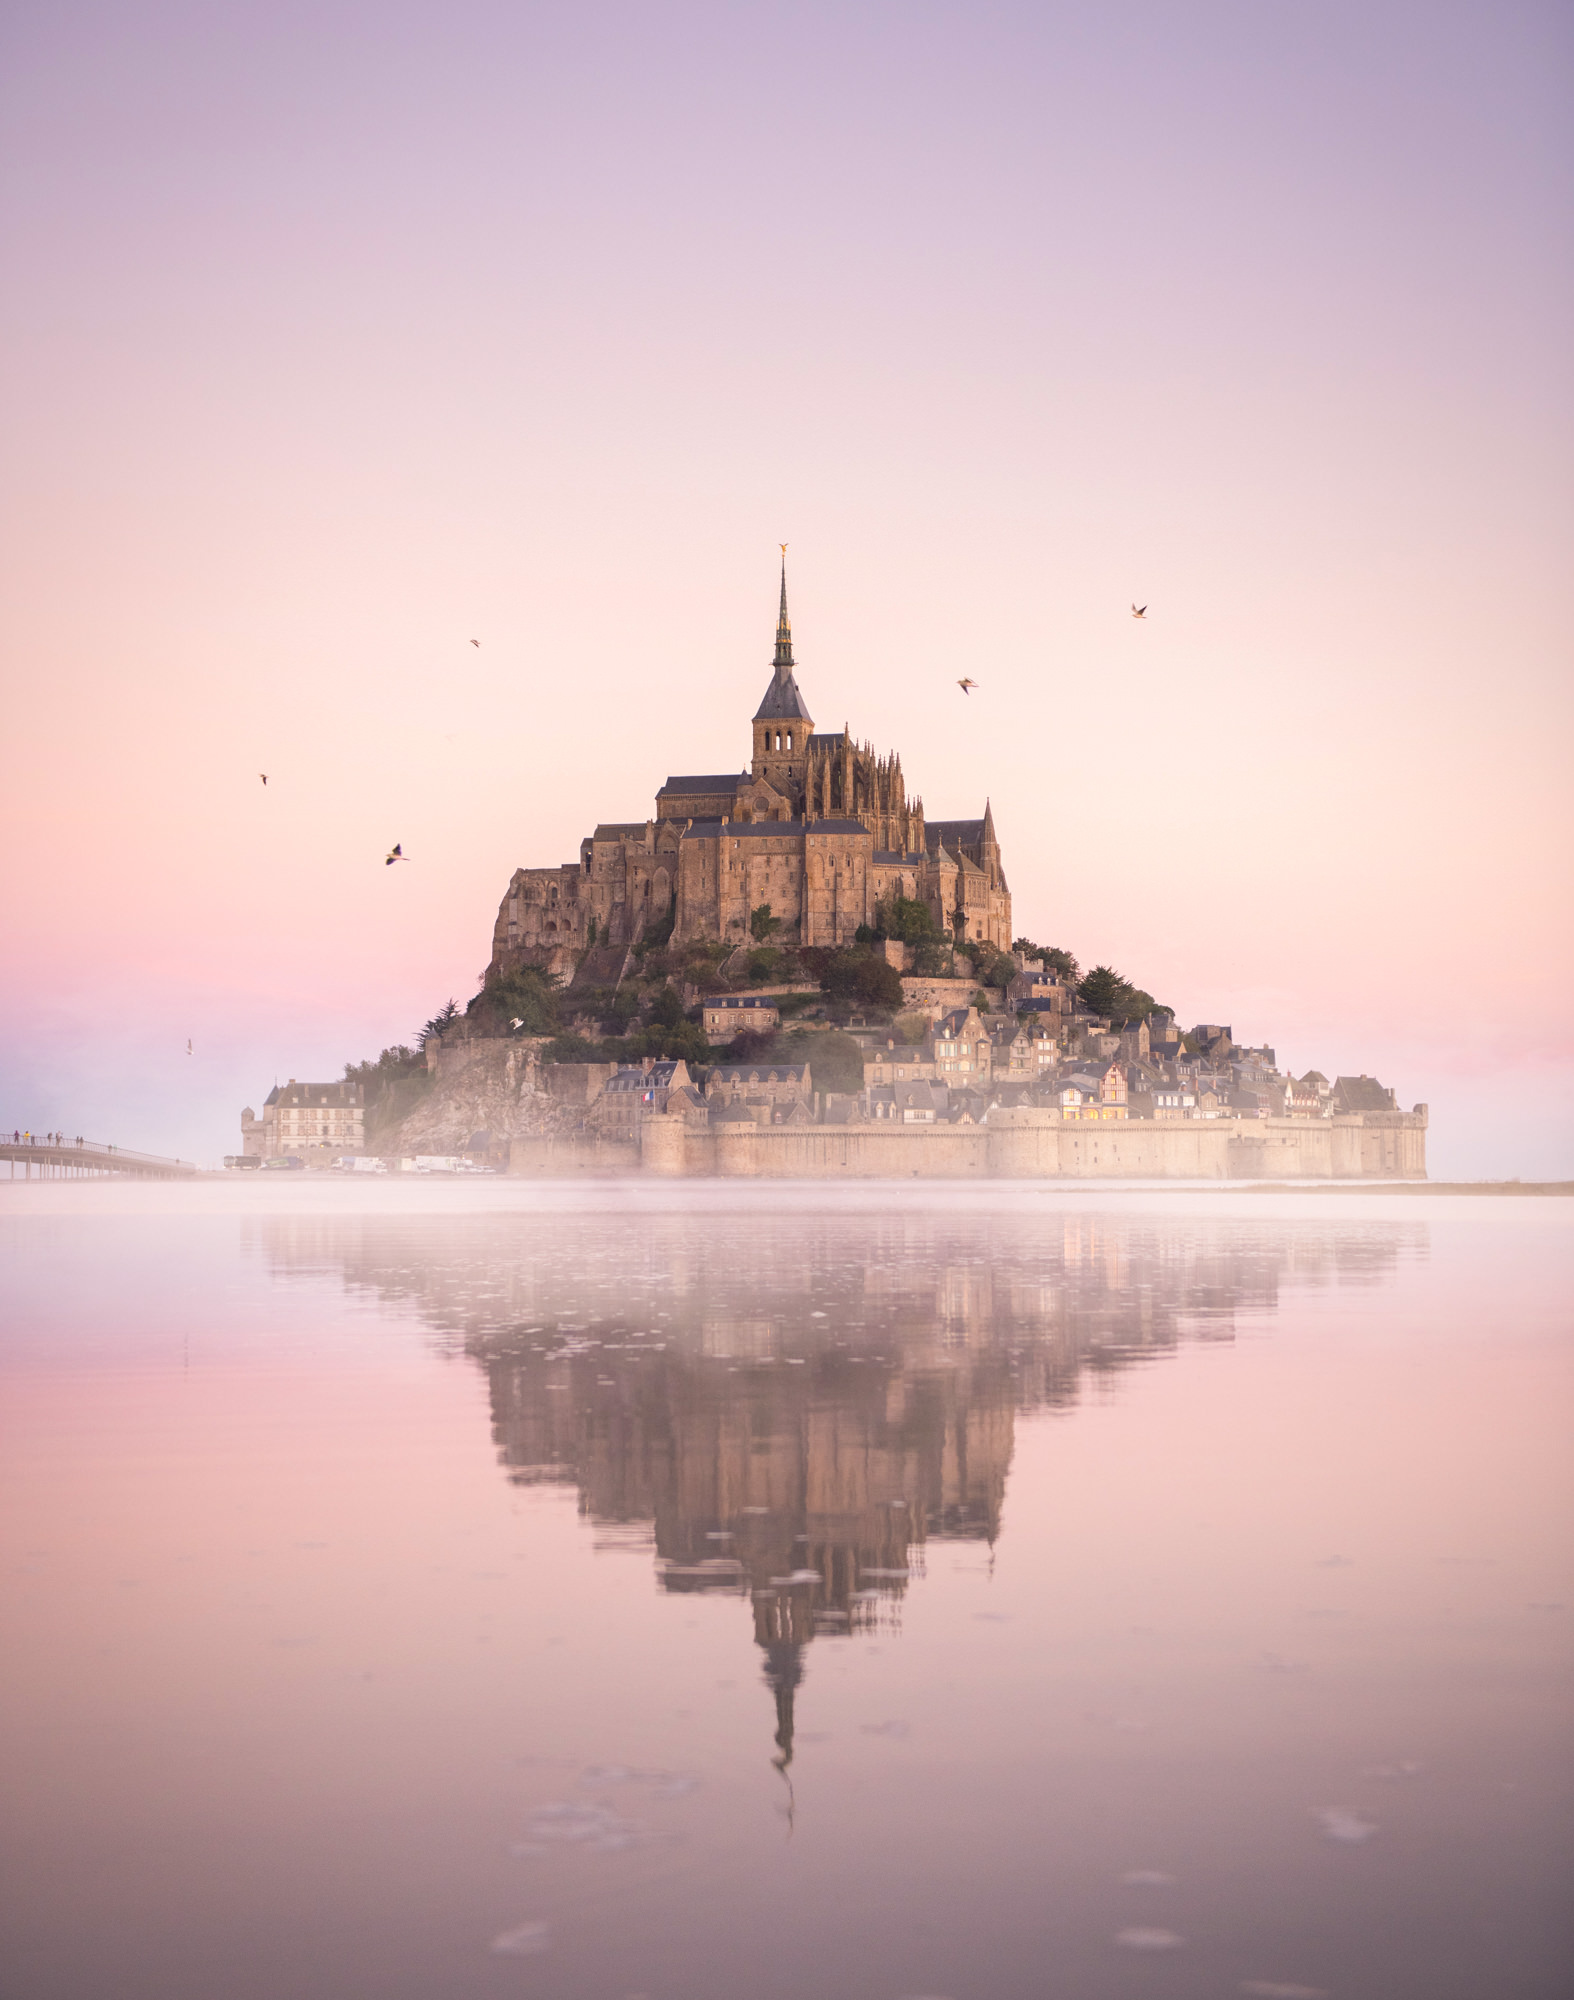 A fairytale castle in France at sunrise